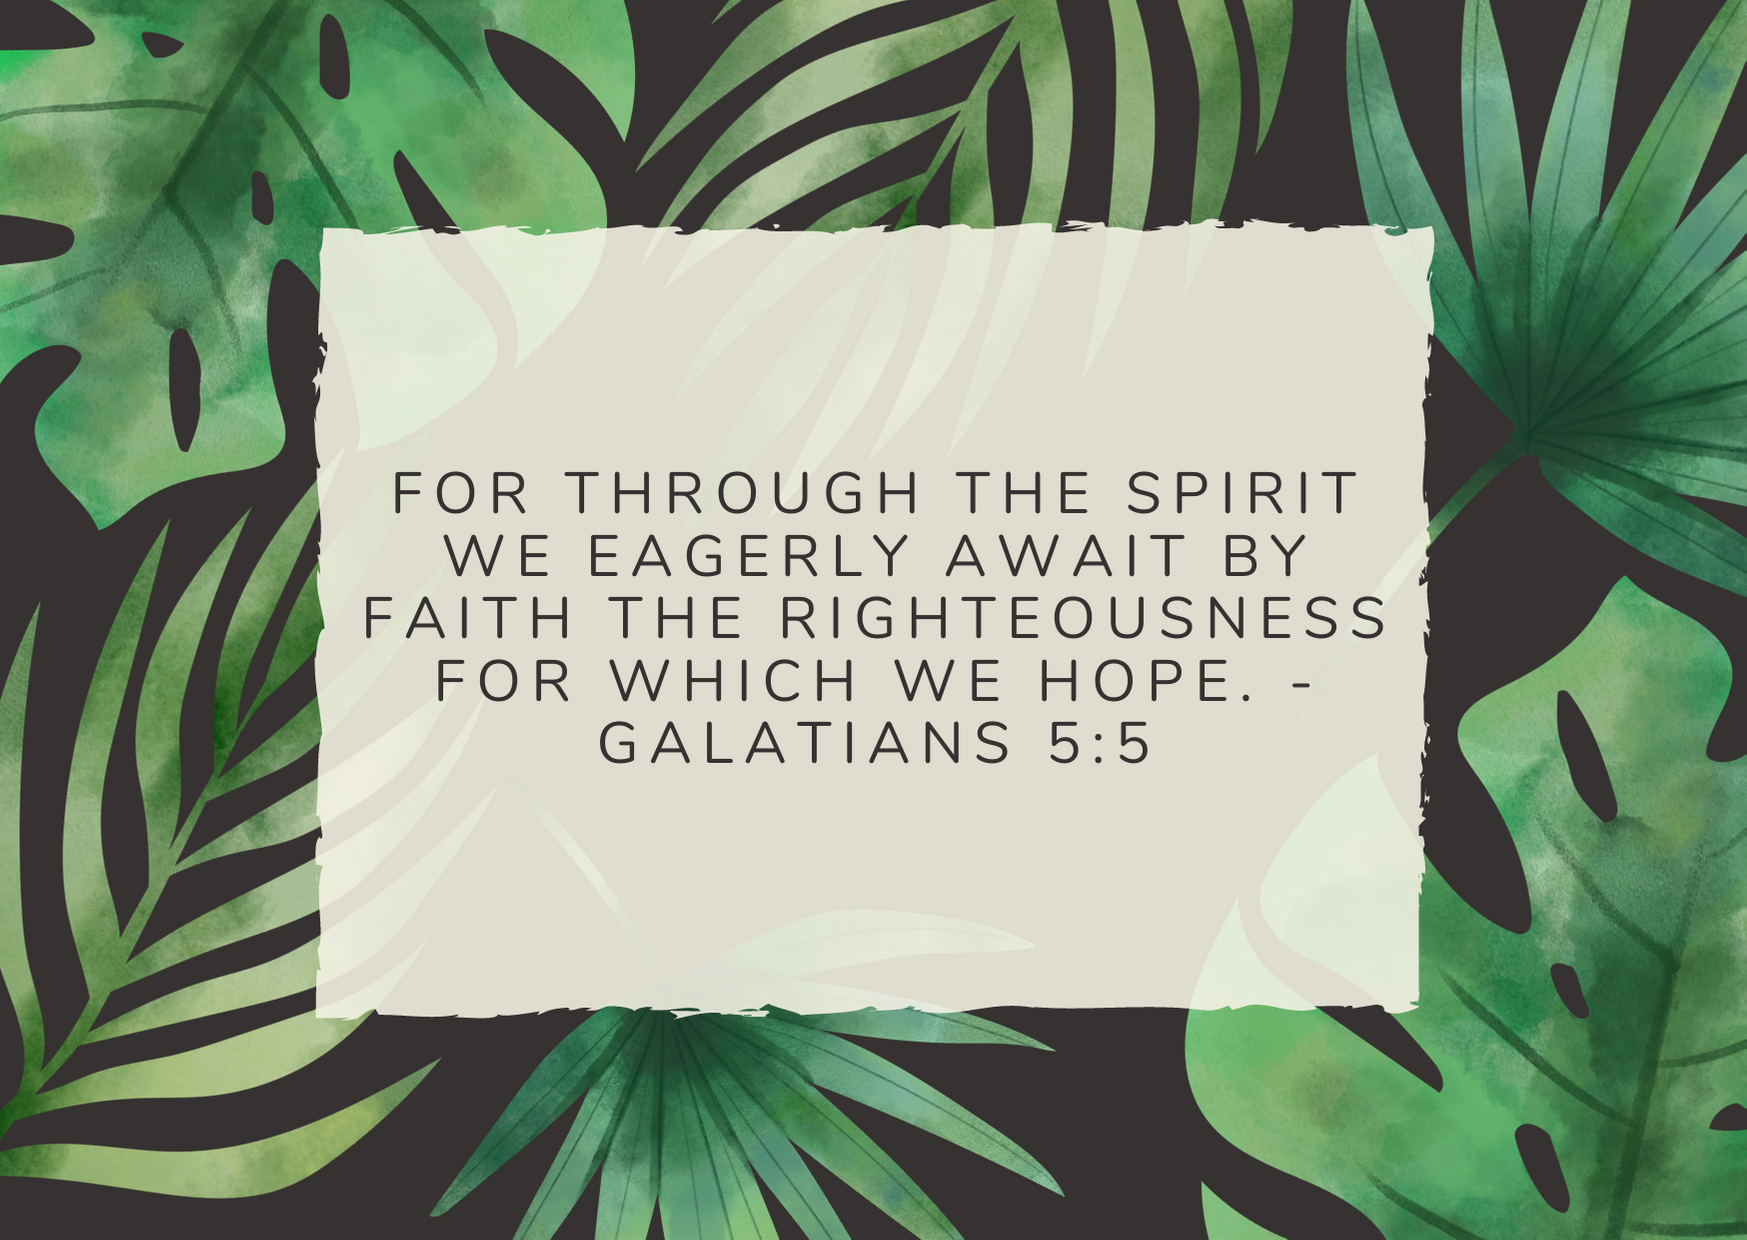 For through the Spirit we eagerly await by faith the righteousness for which we hope. - Galatians 5:5